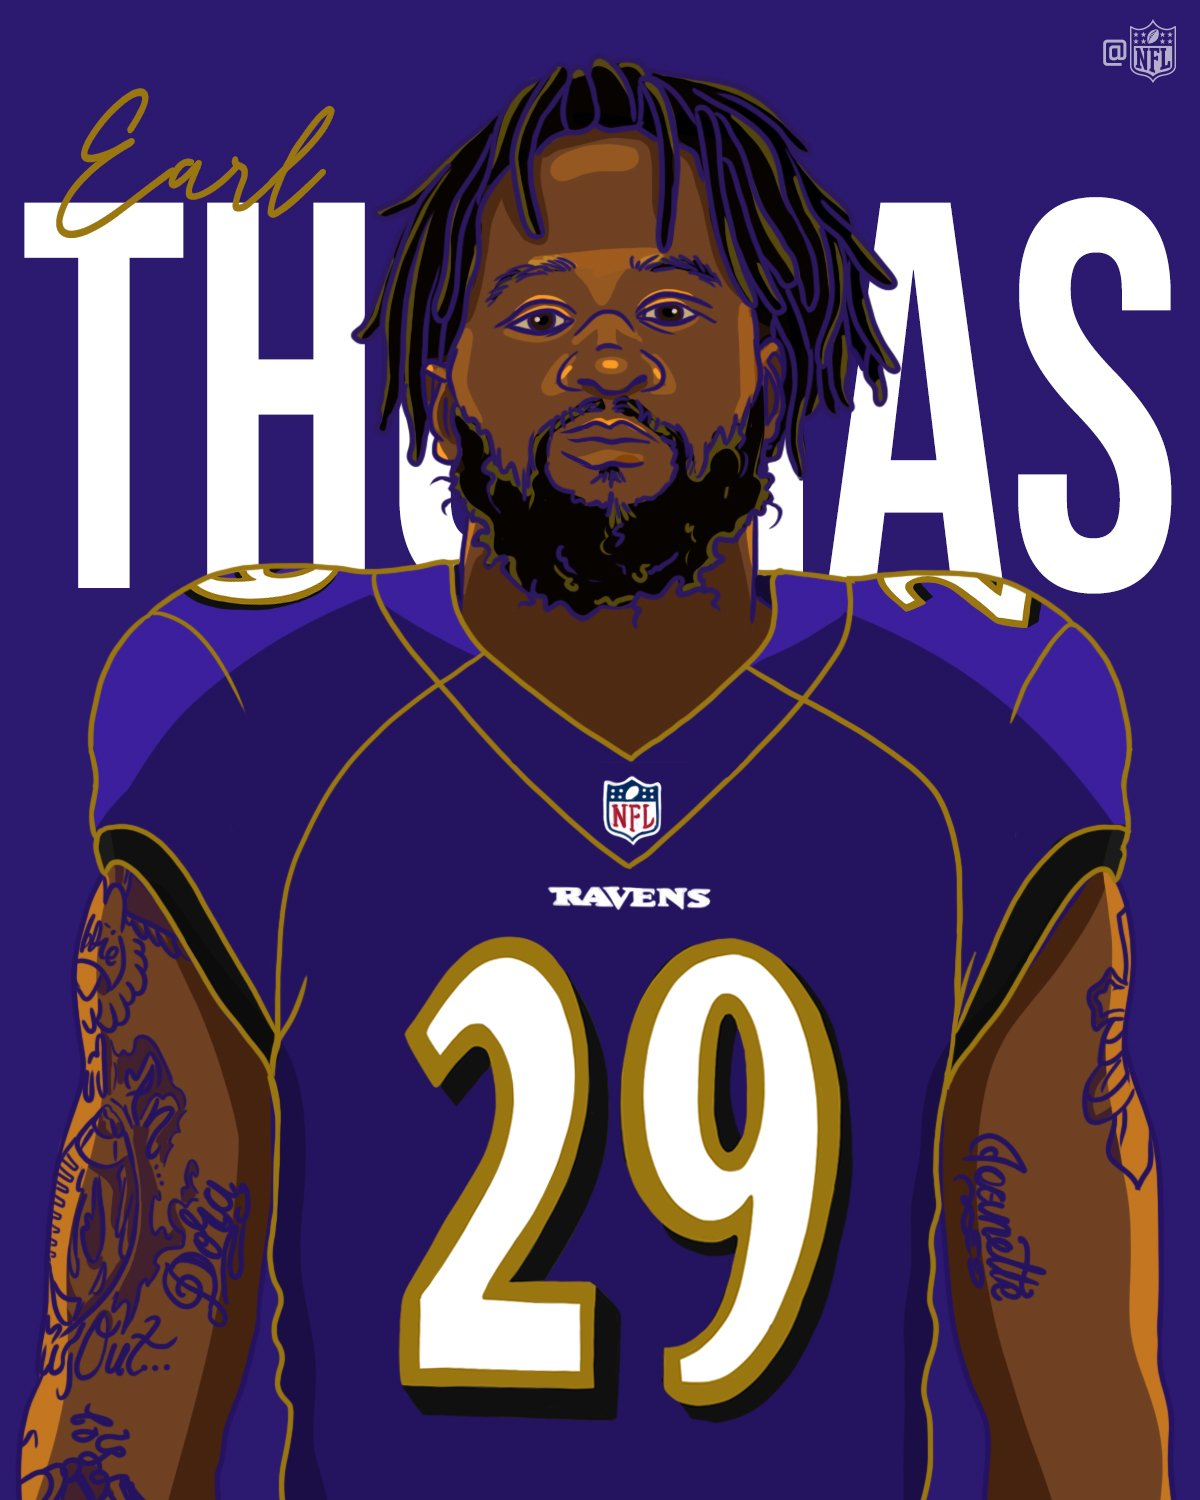 Welcome to the @Ravens, @Earl_Thomas! https://t.co/ef4nf6JGcF